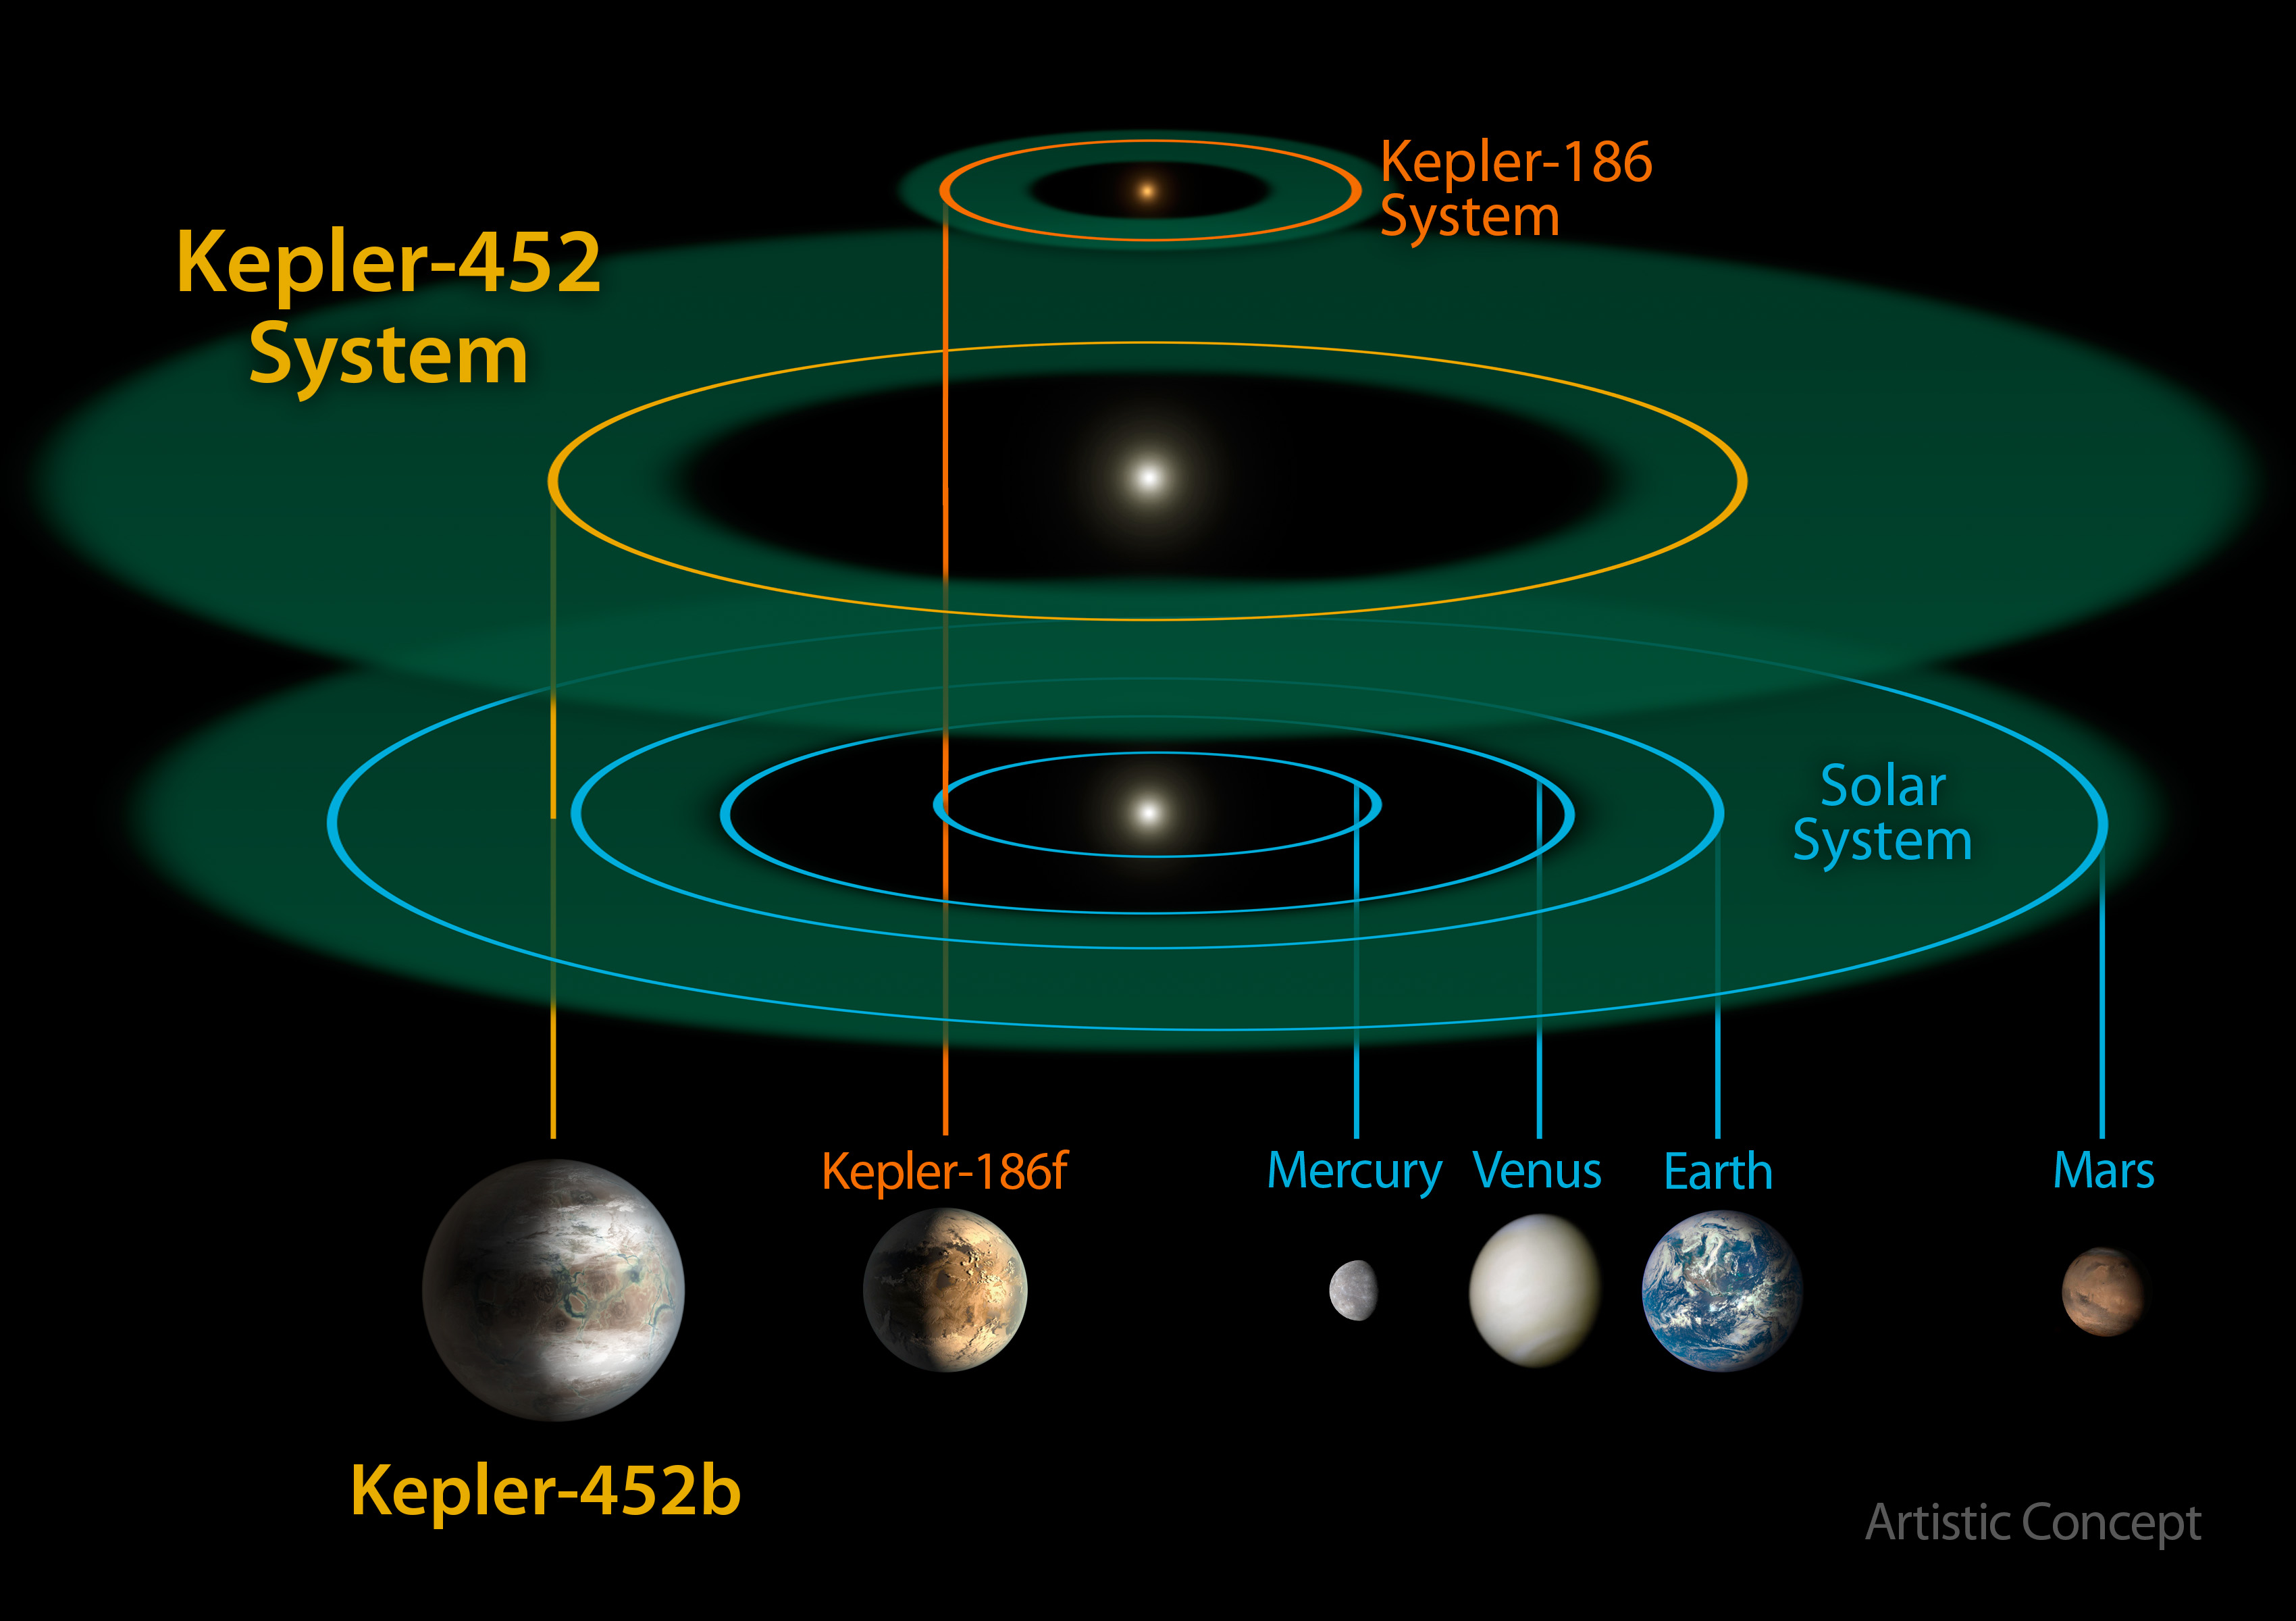 This size and scale of the Kepler-452 system compared alongside the Kepler-186 system and the solar system. Kepler-186 is a miniature solar system that would fit entirely inside the orbit of Mercury. (NASA/JPL-CalTech/R. Hurt)